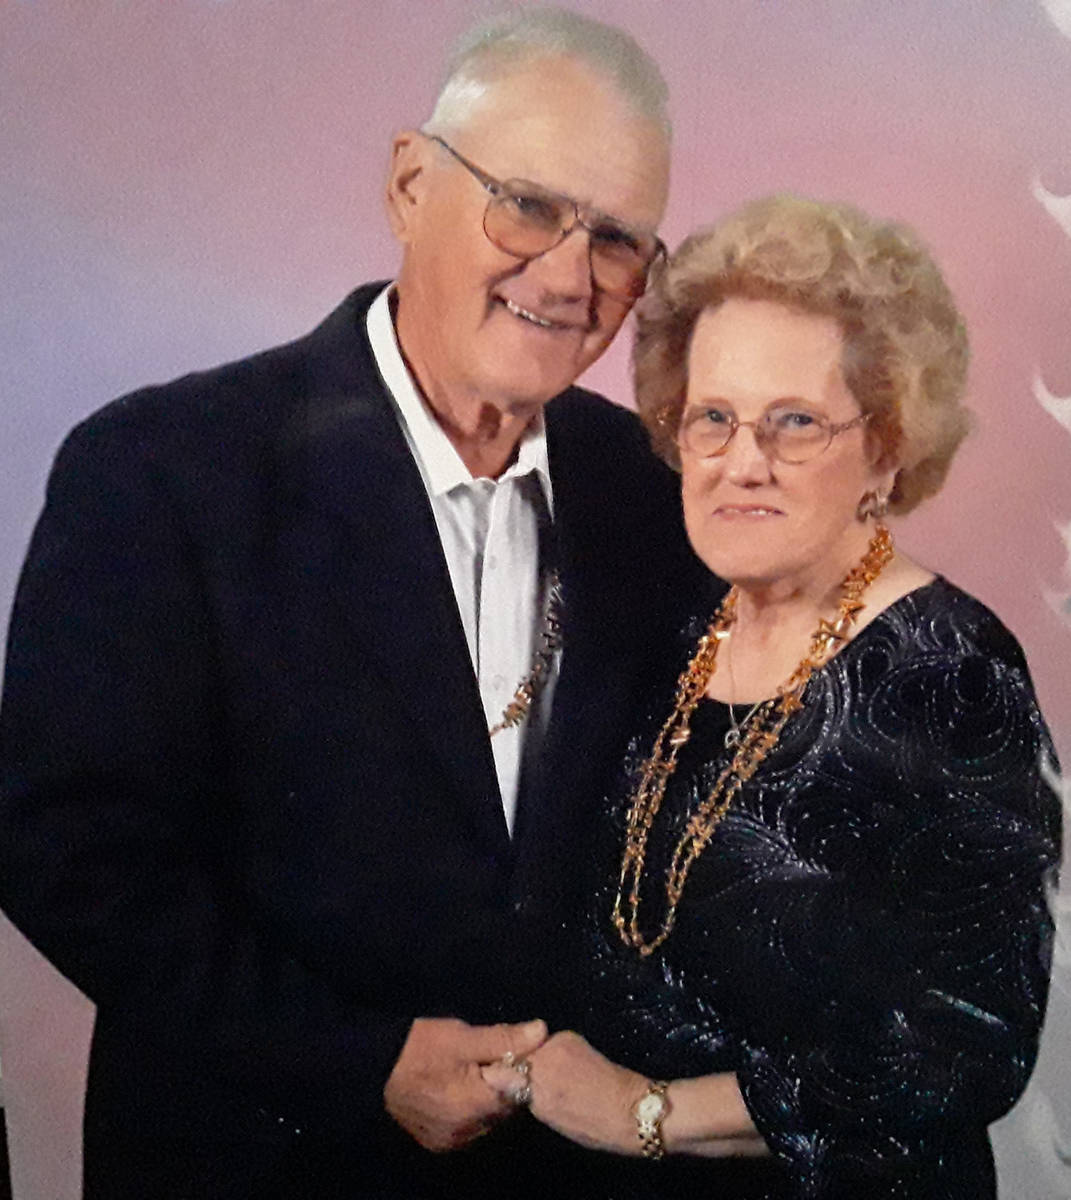 Special to the Pahrump Valley Times Pahrump Valley Mortuary owners Emil and Mildred Janssen sha ...